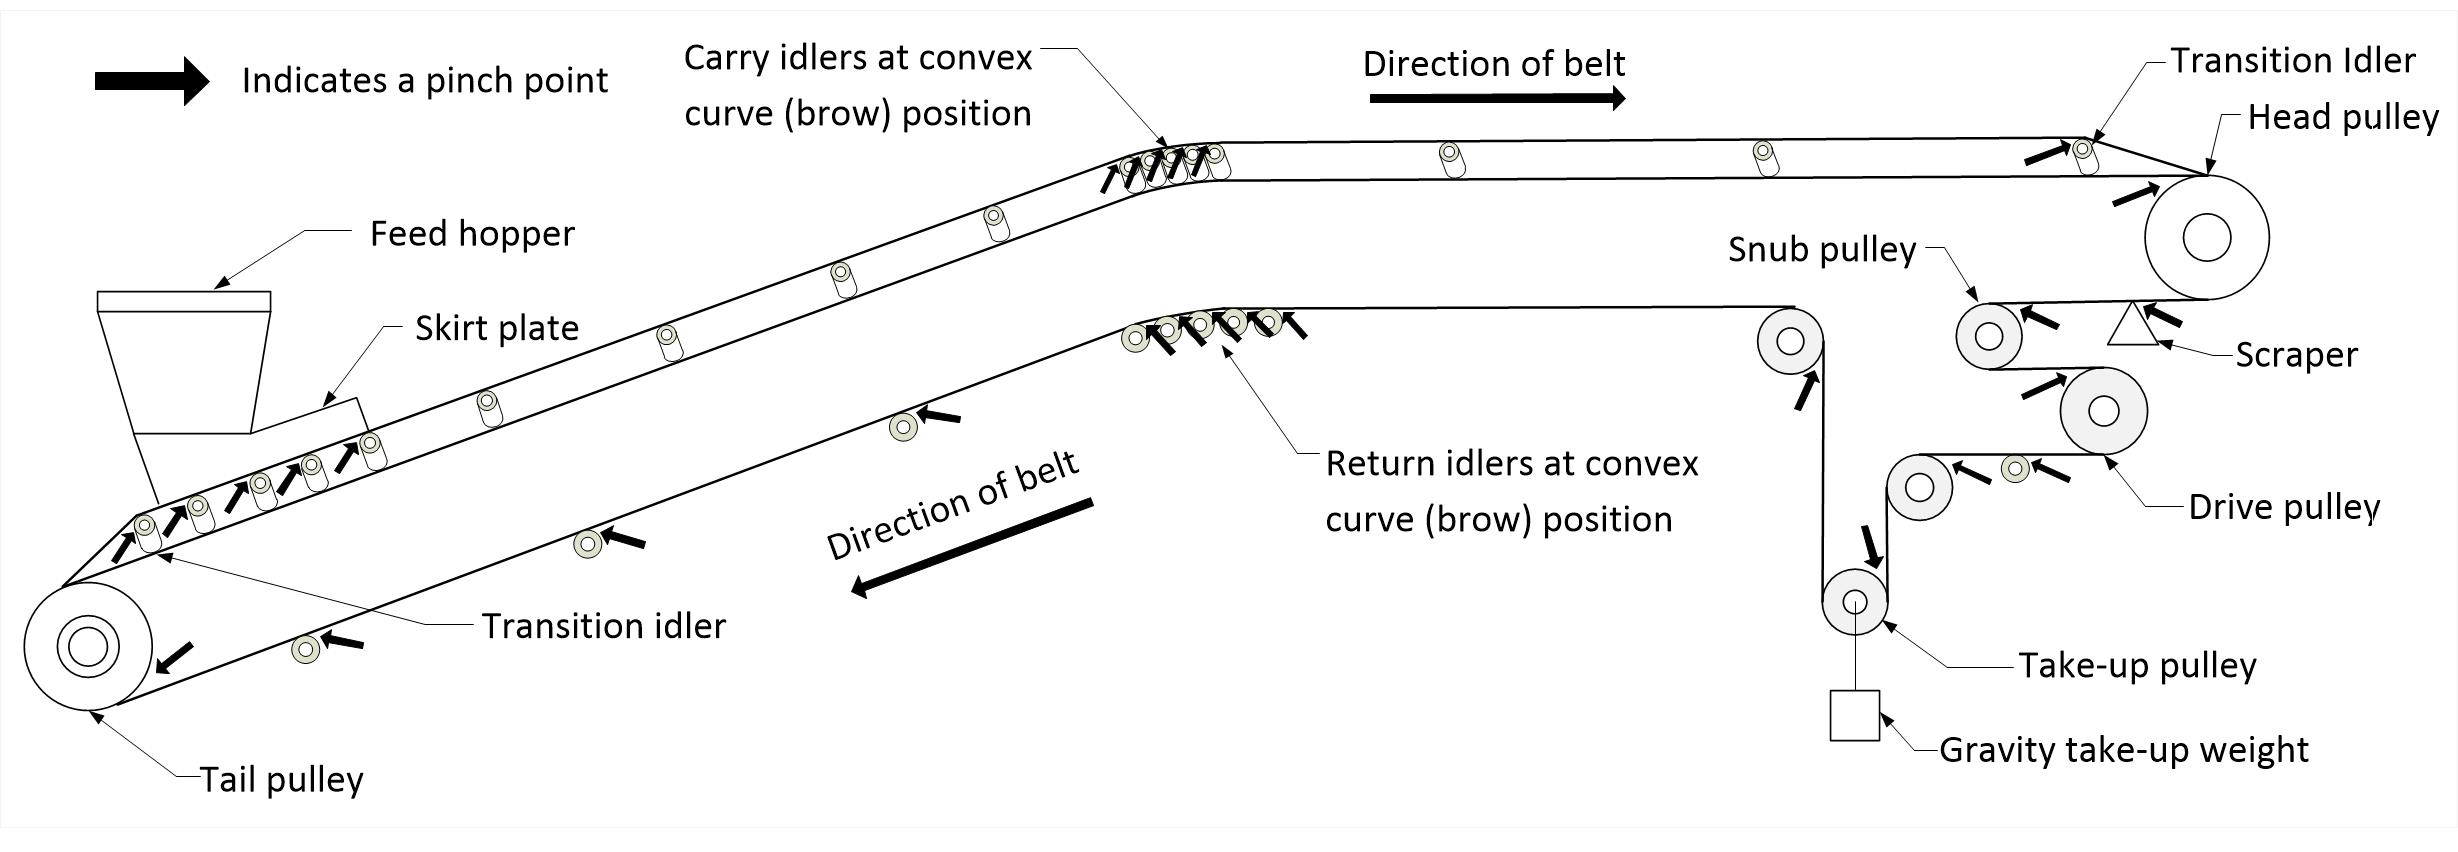 Illustration showing belt conveyor pinch points. A pinch point can be  located at a head